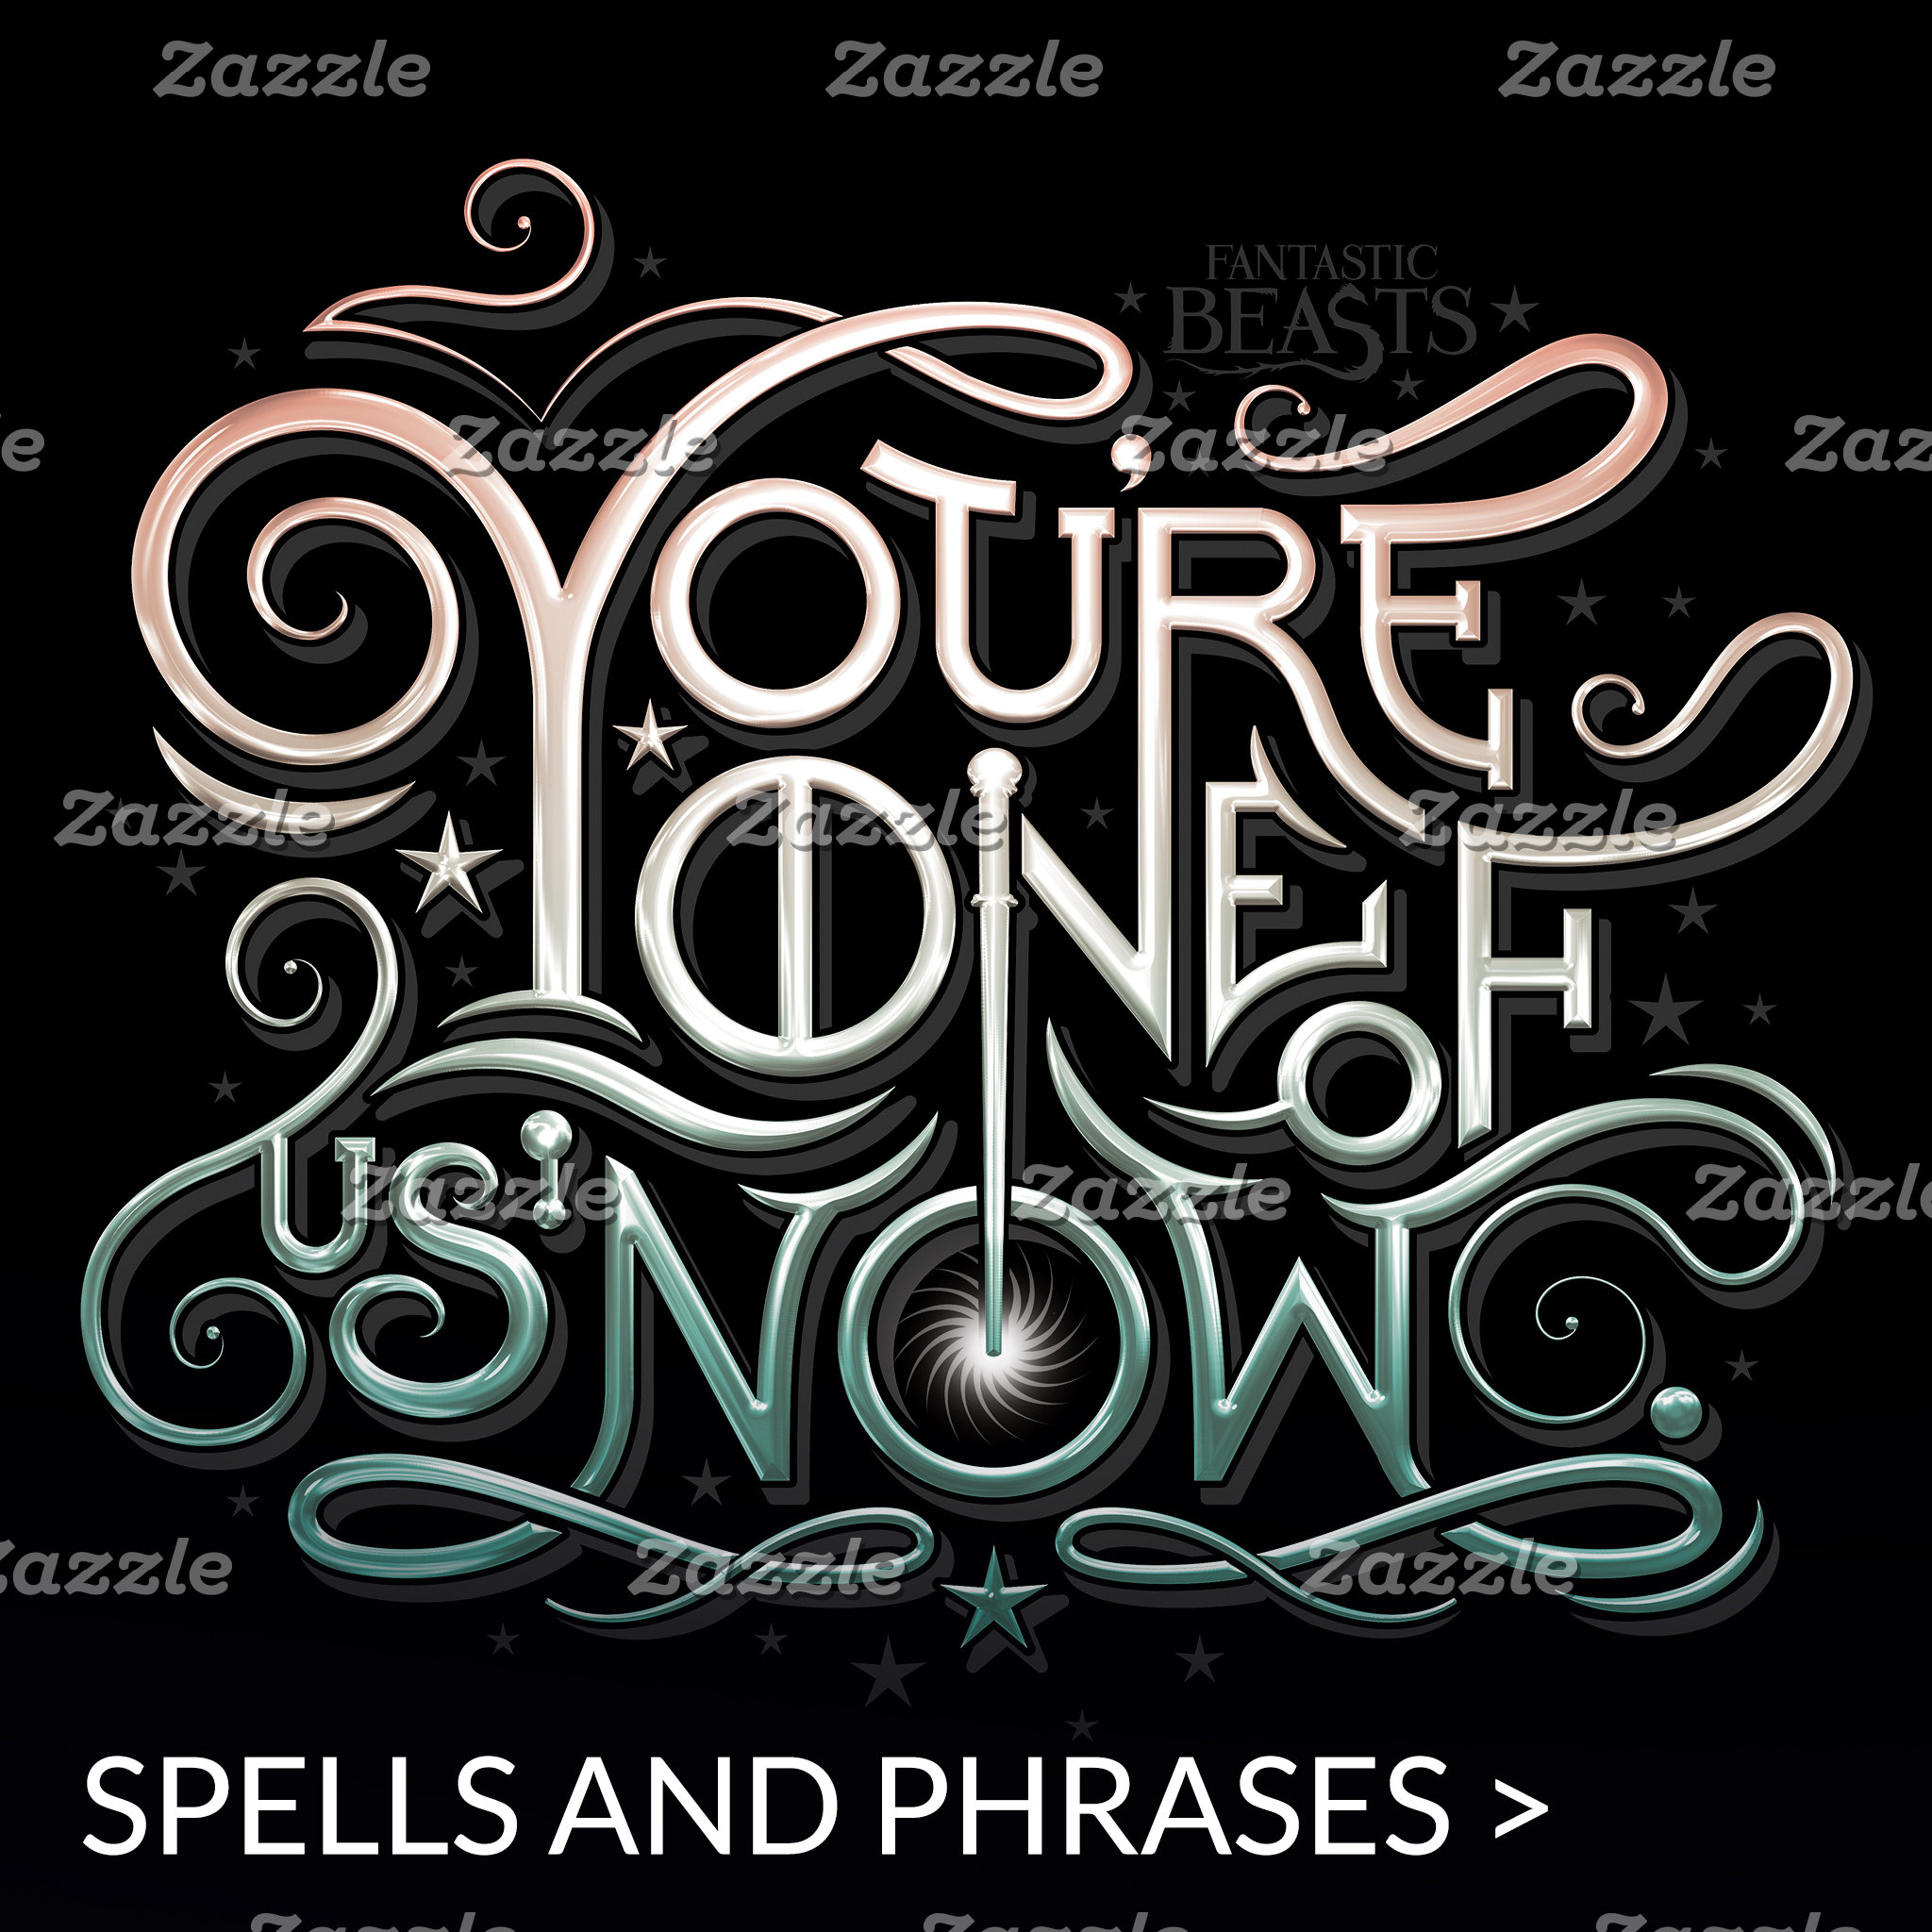 Spells and Phrases